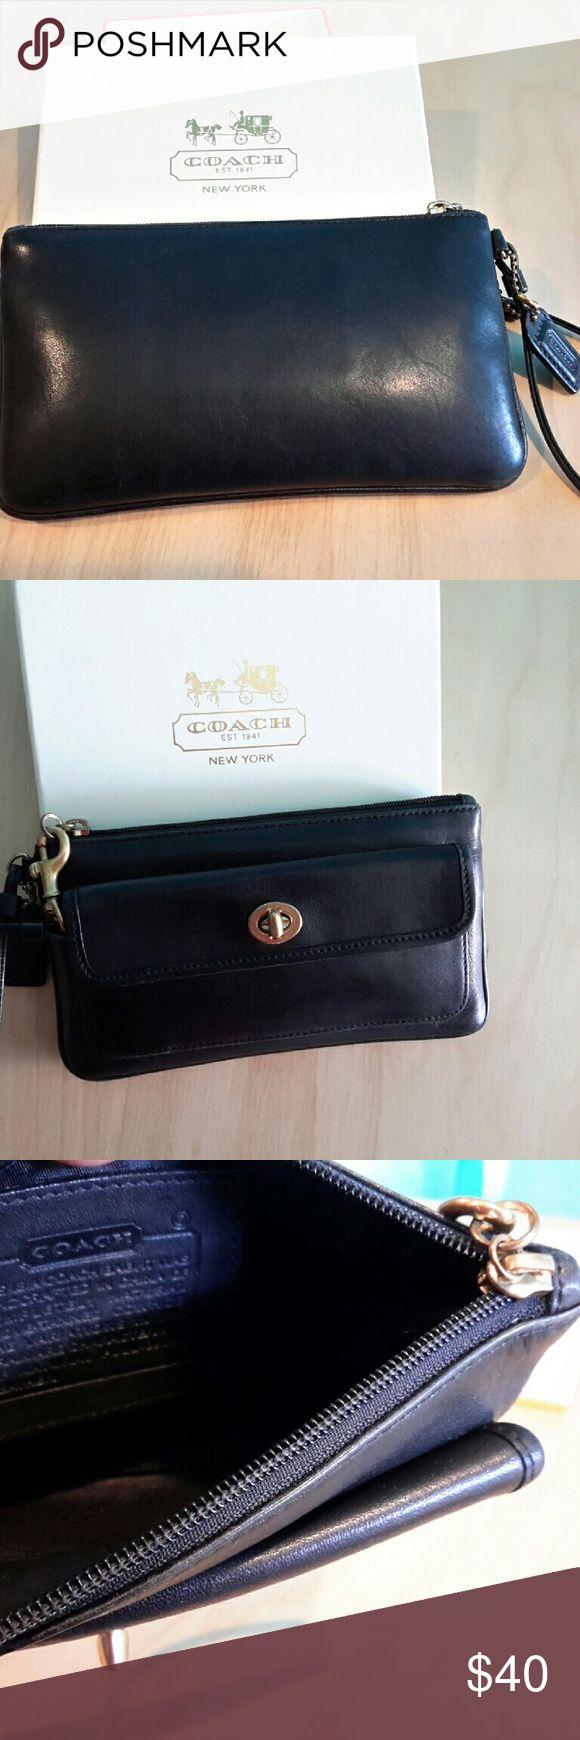 Coach legacy black leather Turnlock wristlet Authentic Coach vintage black leather wristlet w/gold hardware brand new. Never used   No TRADES!!! ( Dose Not Come With A Box ) coach  Bags Clutches & Wristlets